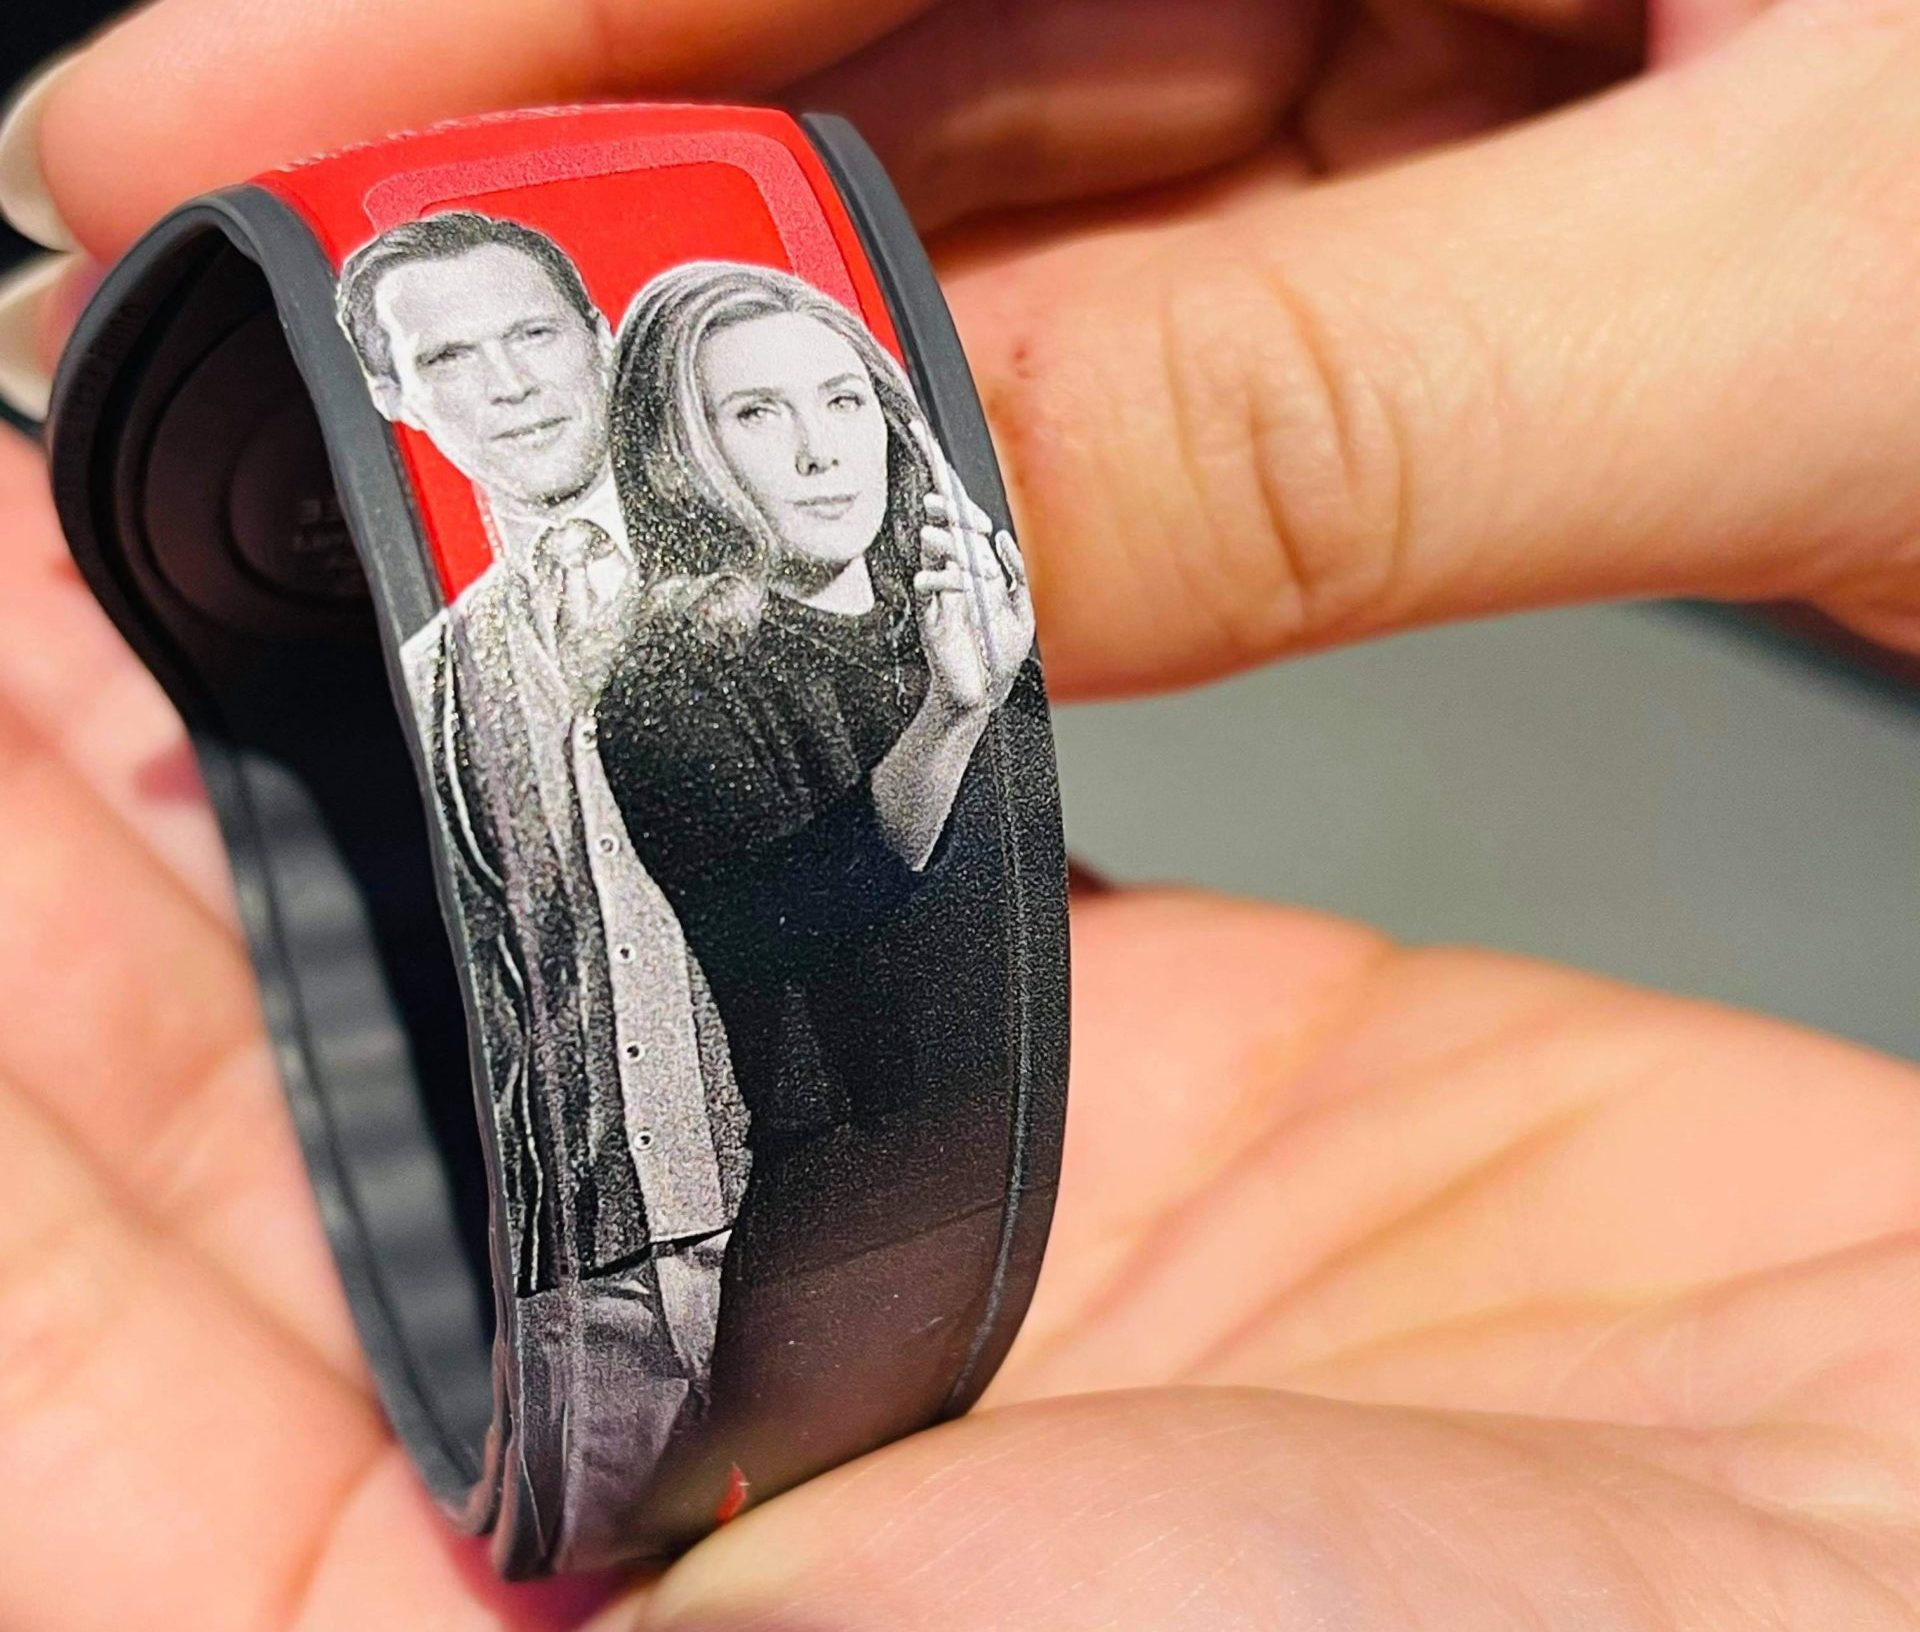 wanda and vision on new exclusive limited edition magicband